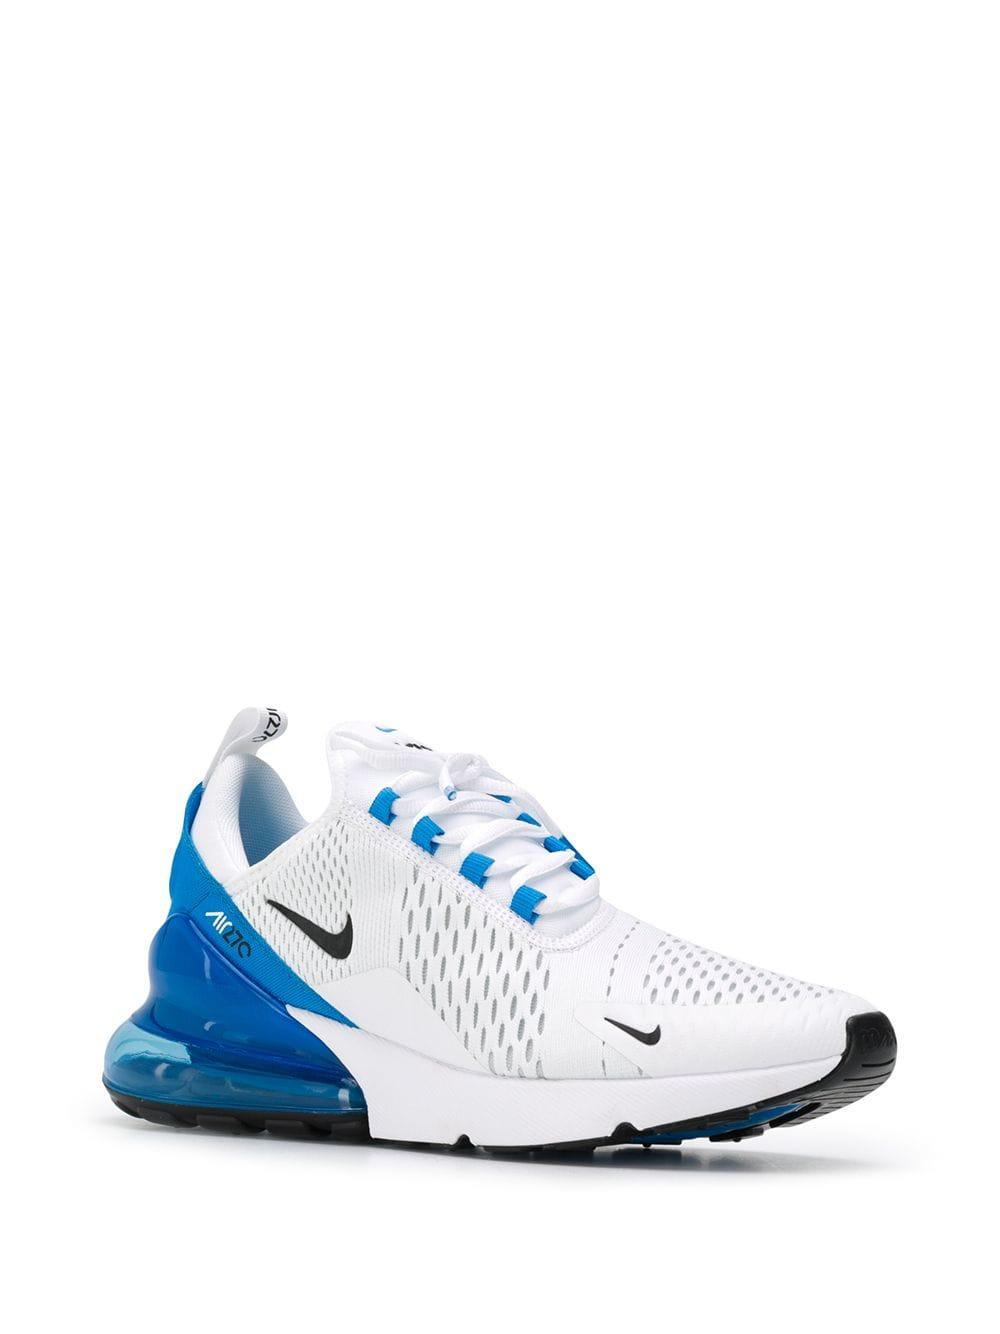 new products 7d8f7 99d37 Lyst - Nike Air Max 270 Sneakers in White for Men